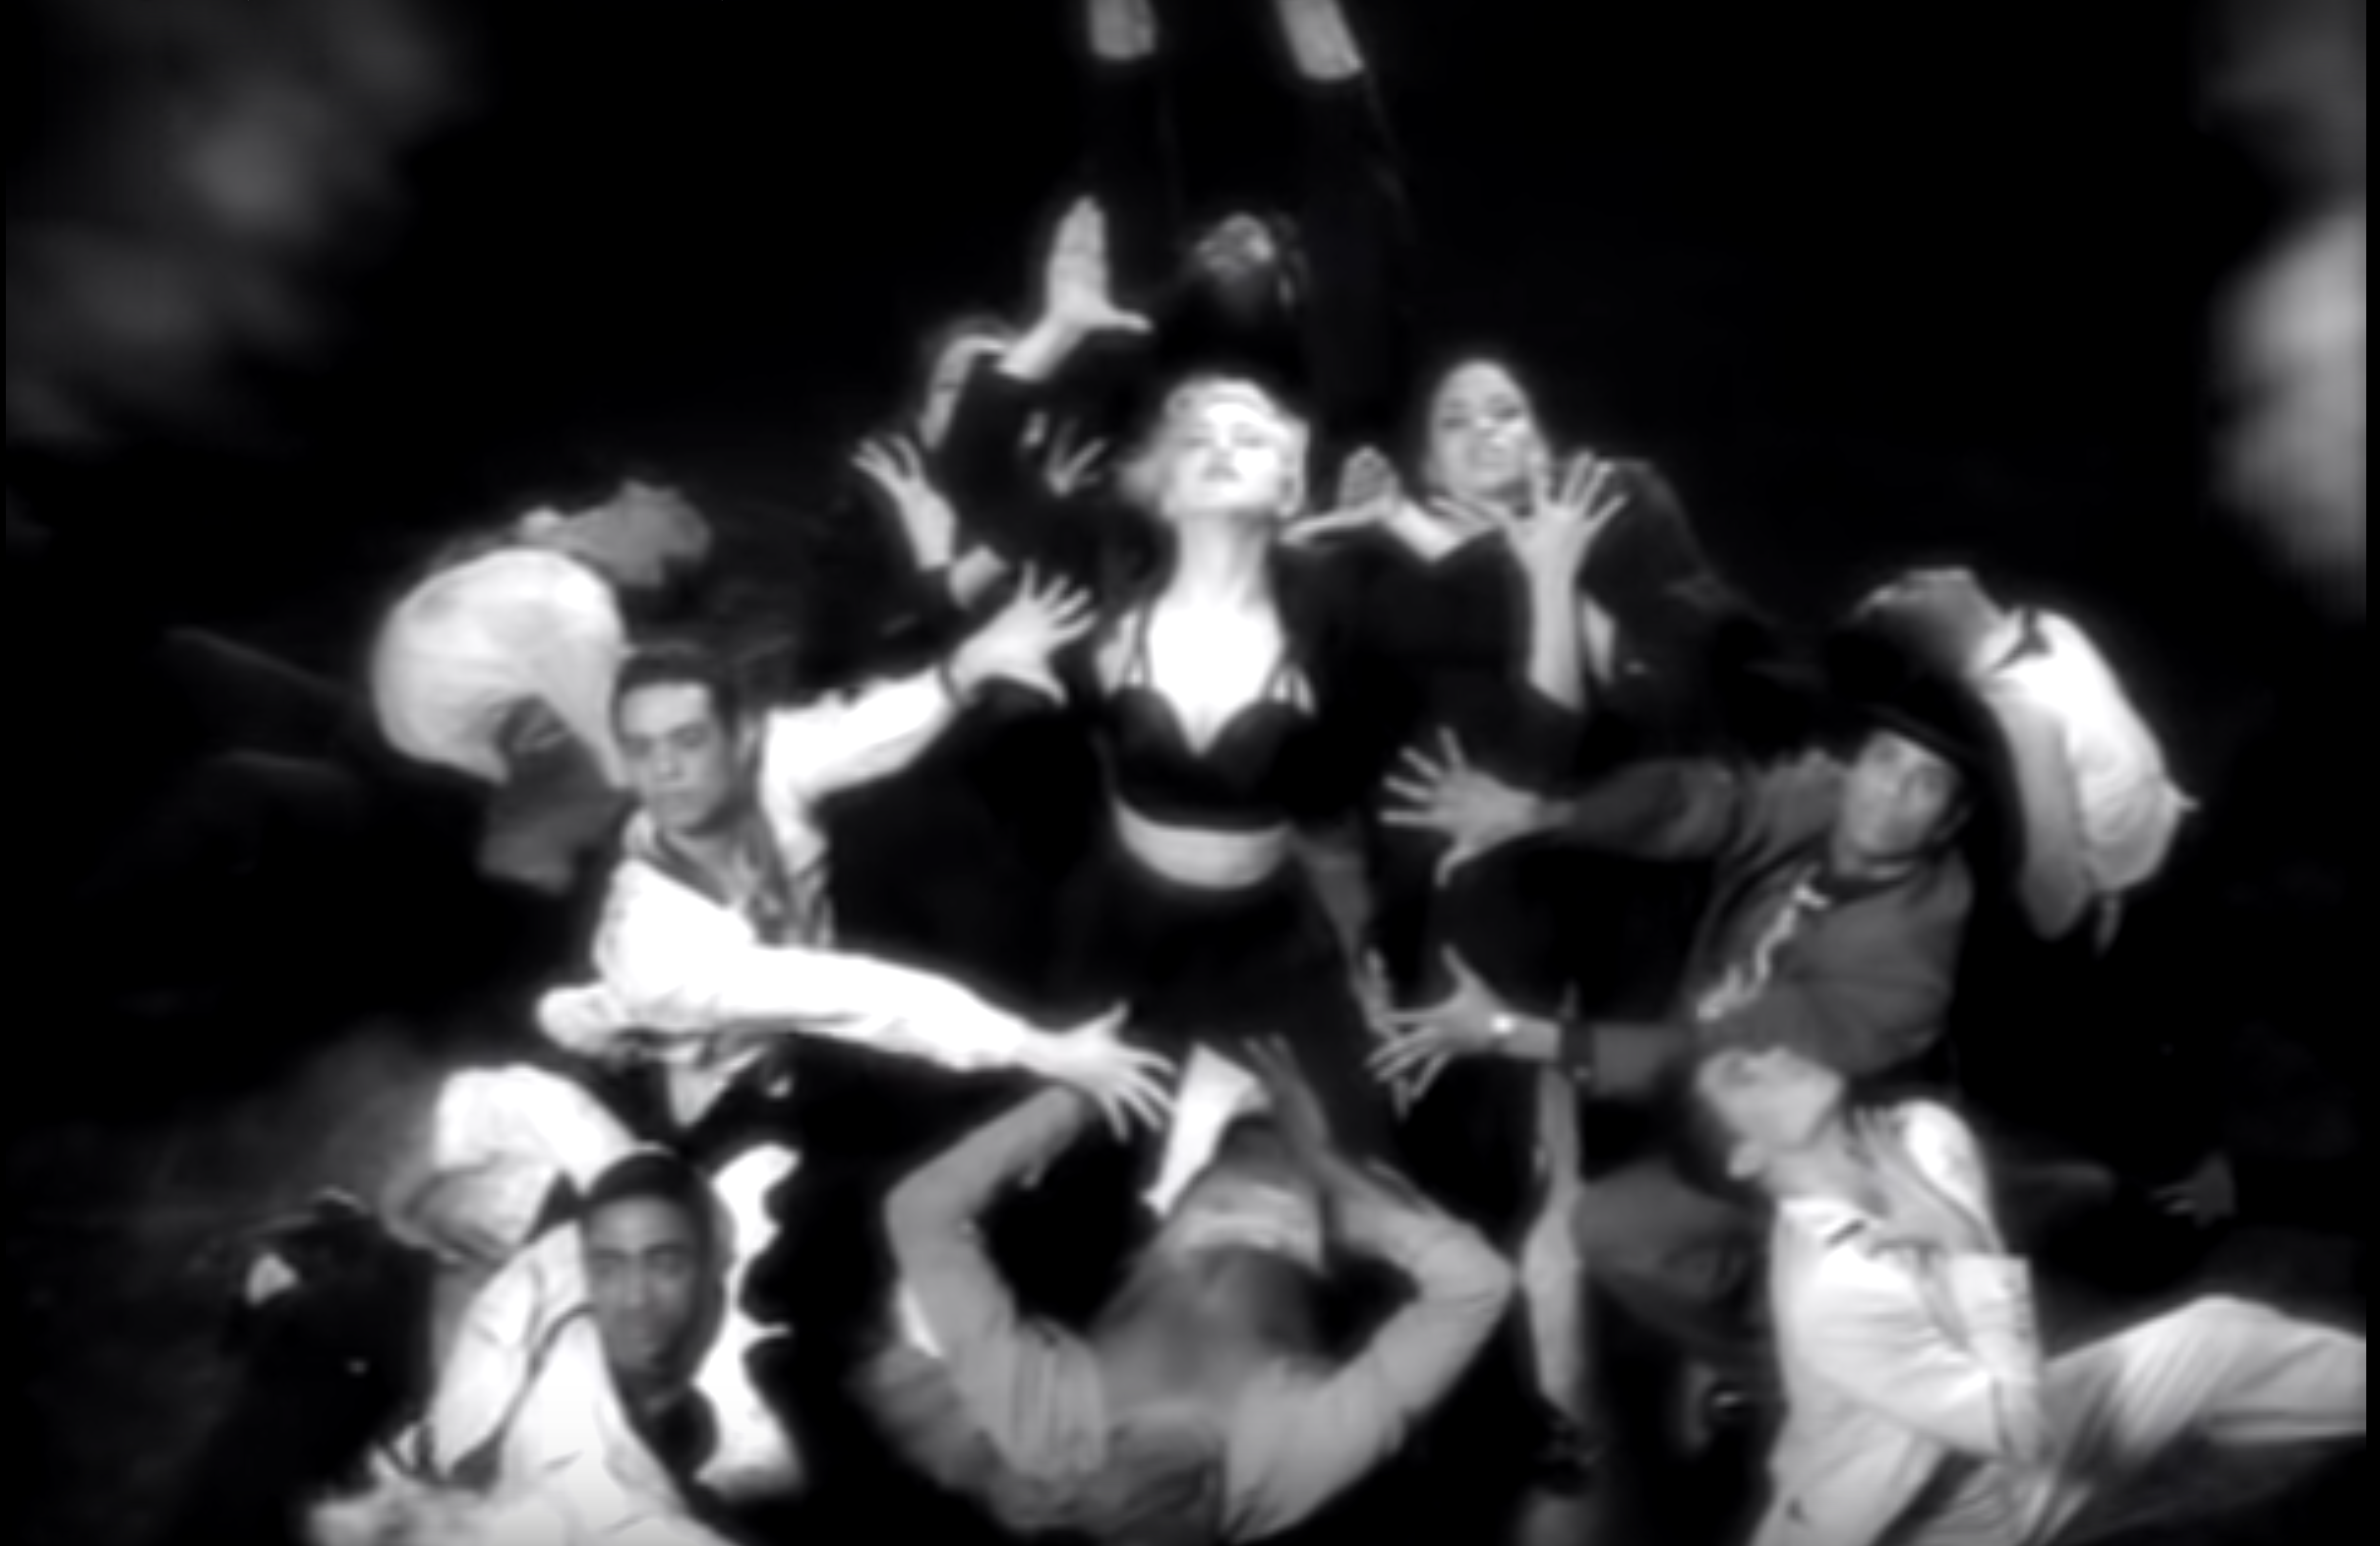 A punk academic helps you justify your love for Madonna's music videos